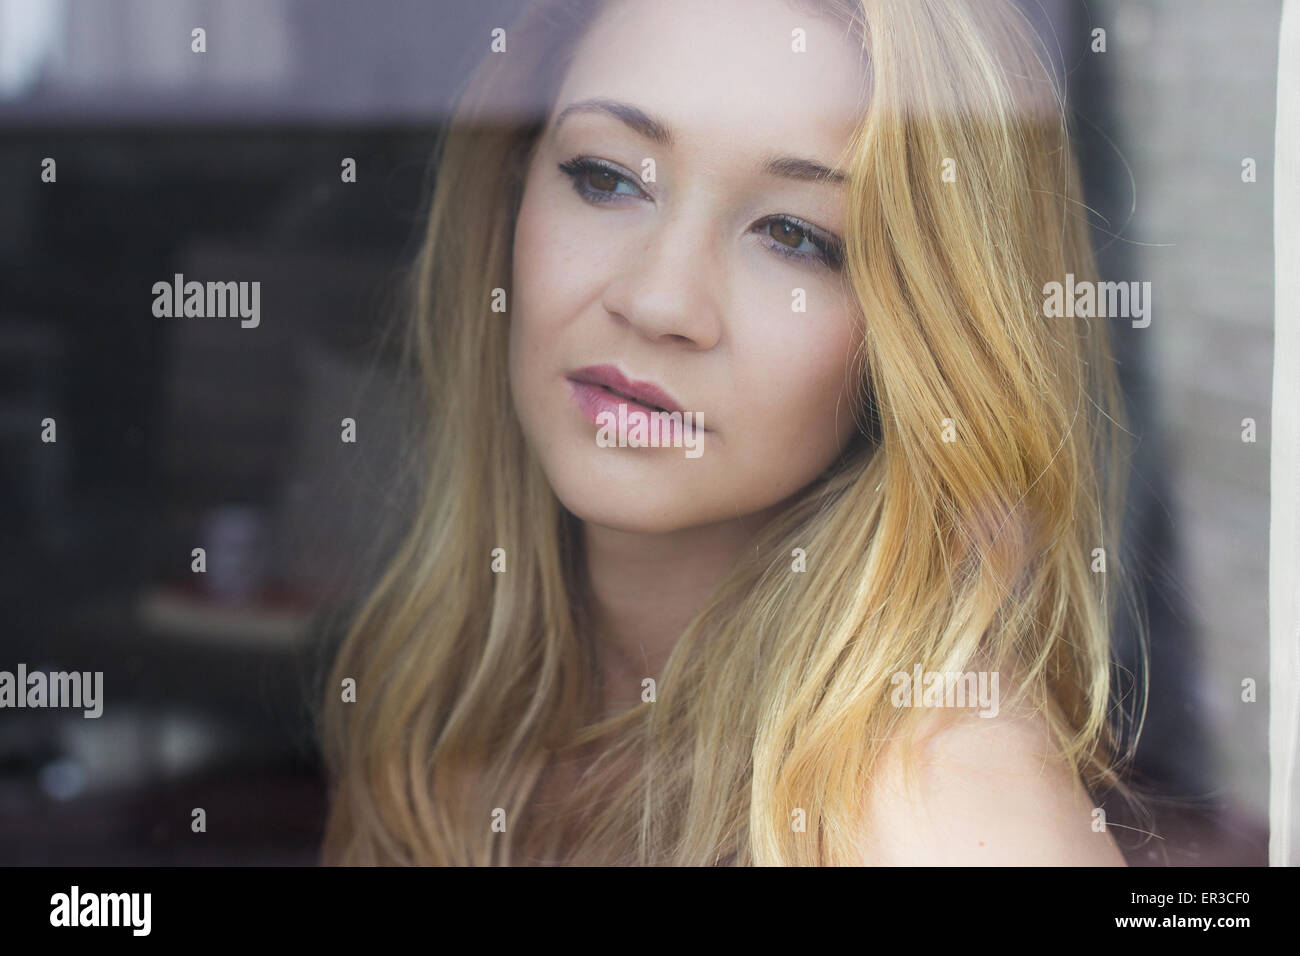 Portrait of a young woman looking out of the window - Stock Image